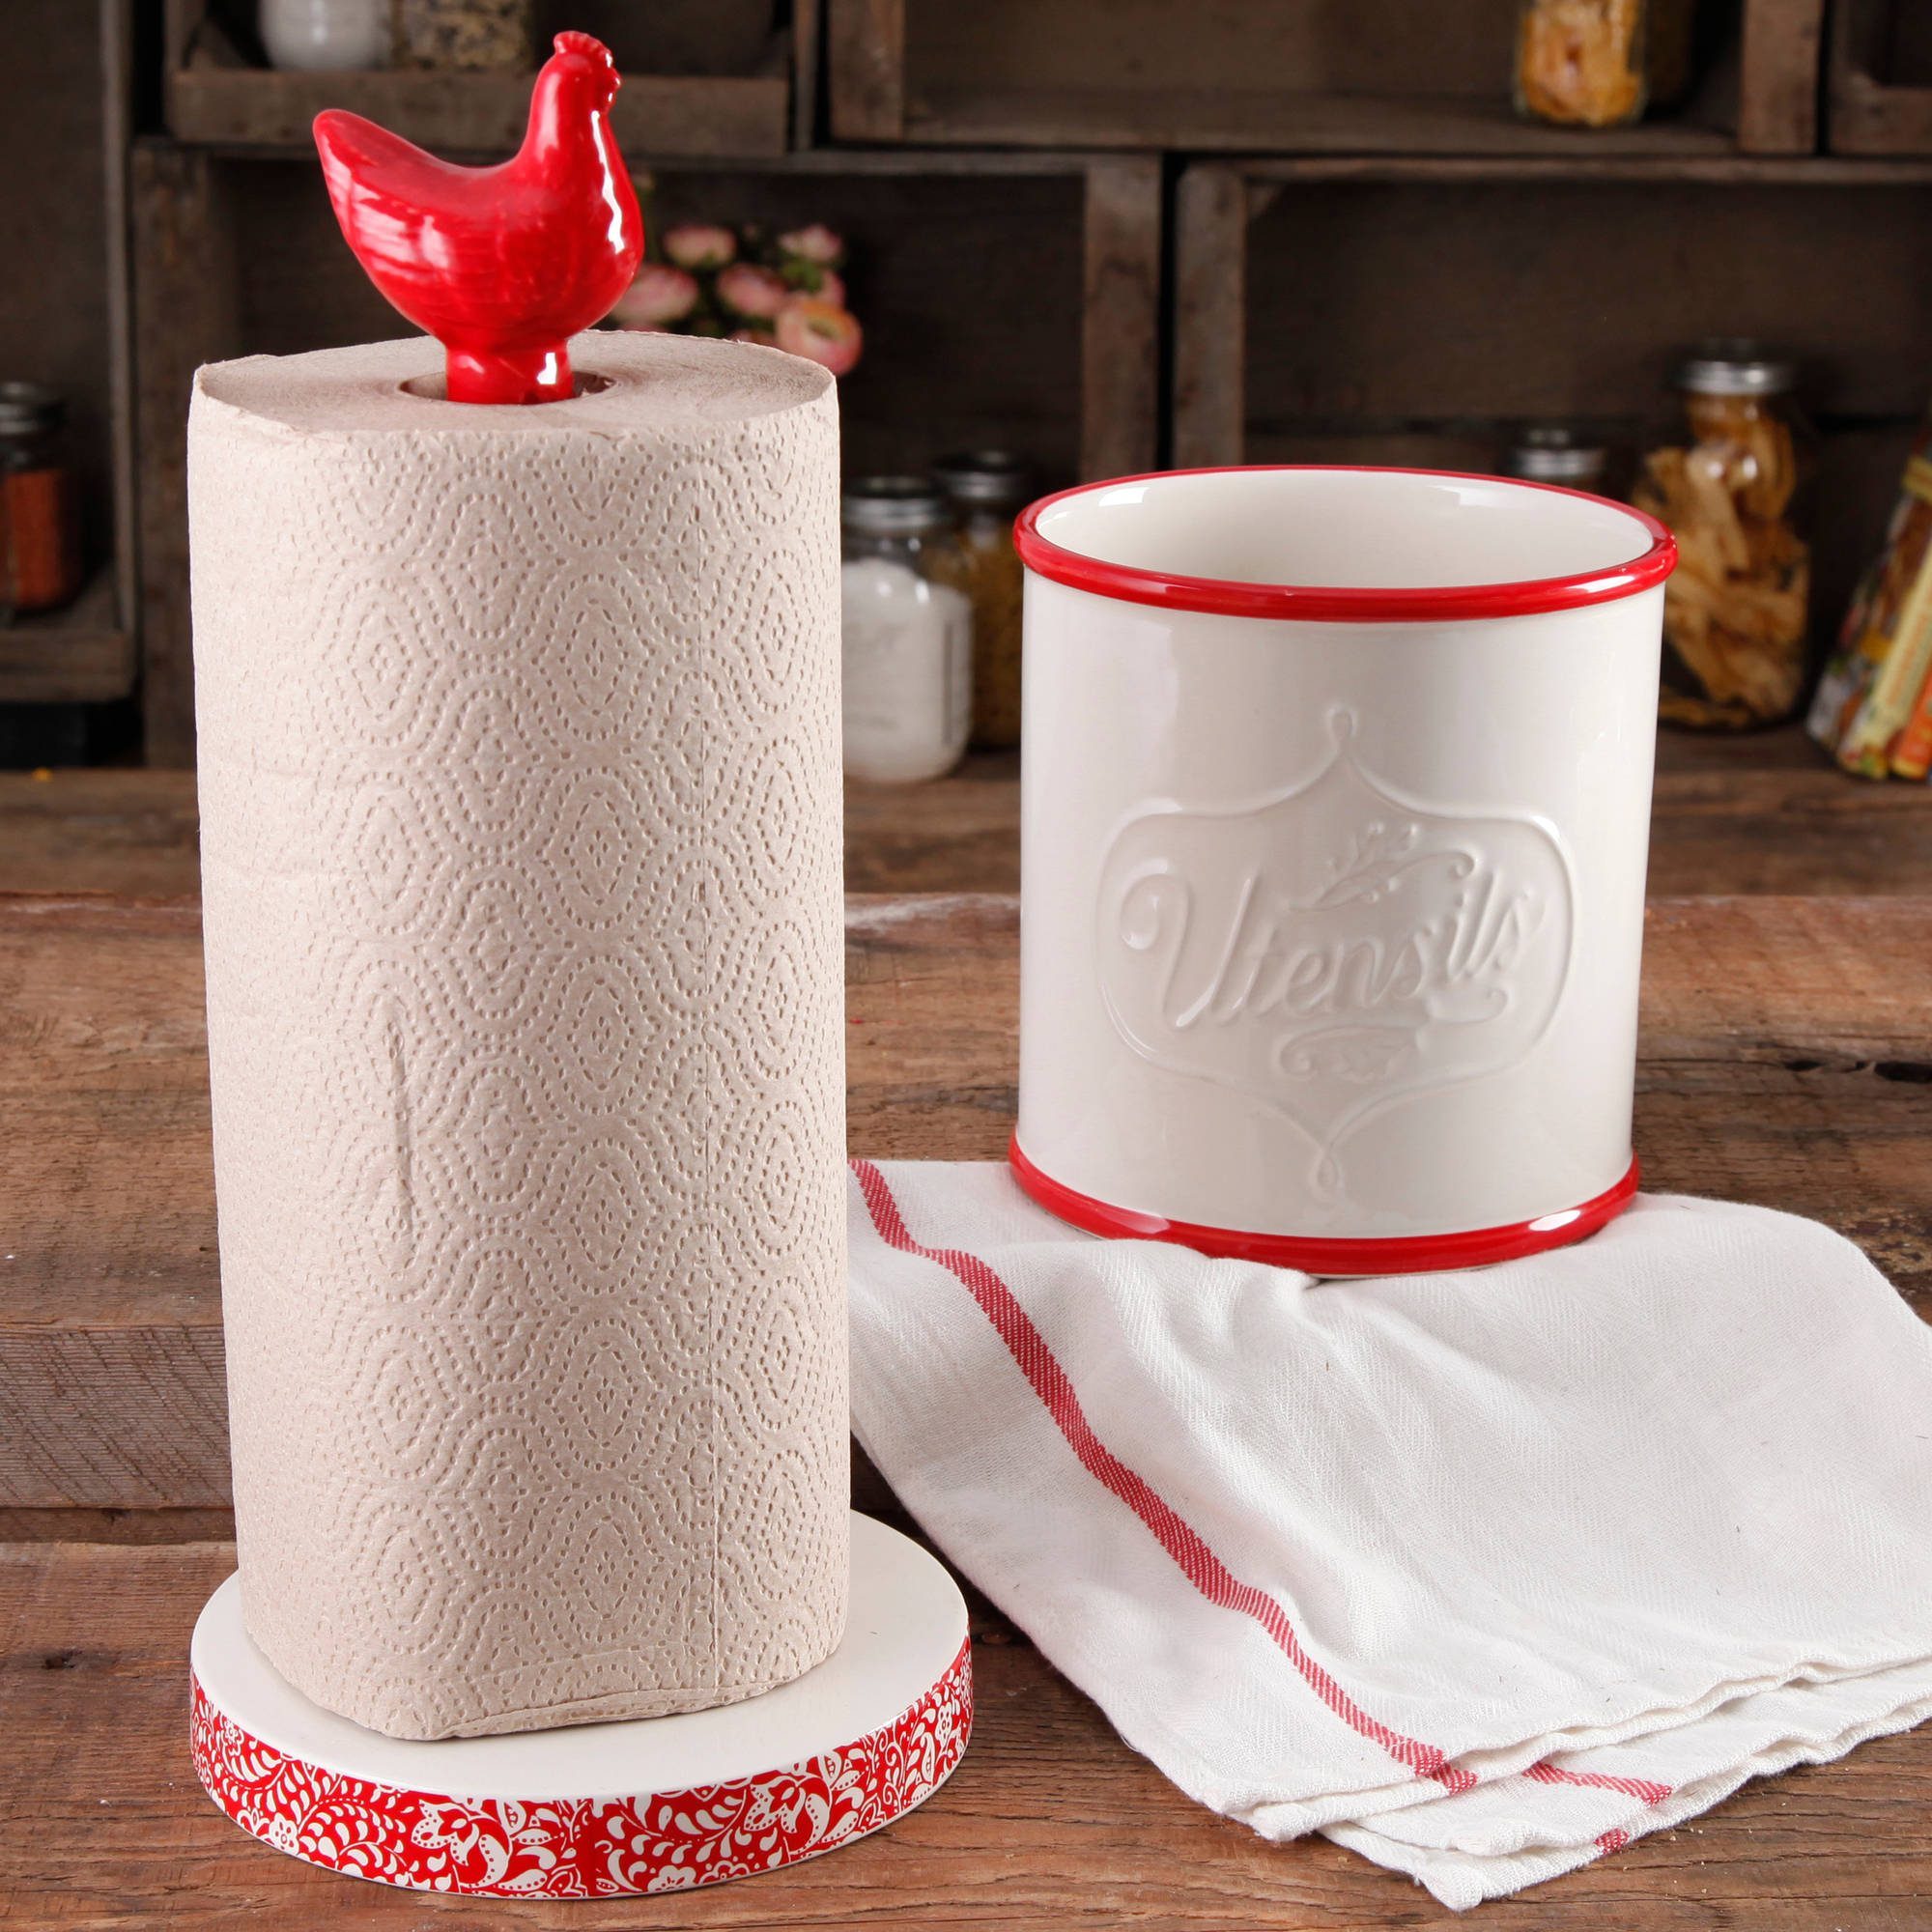 The Pioneer Woman Flea Market Stoneware Red Paper Towel Holder And Crock